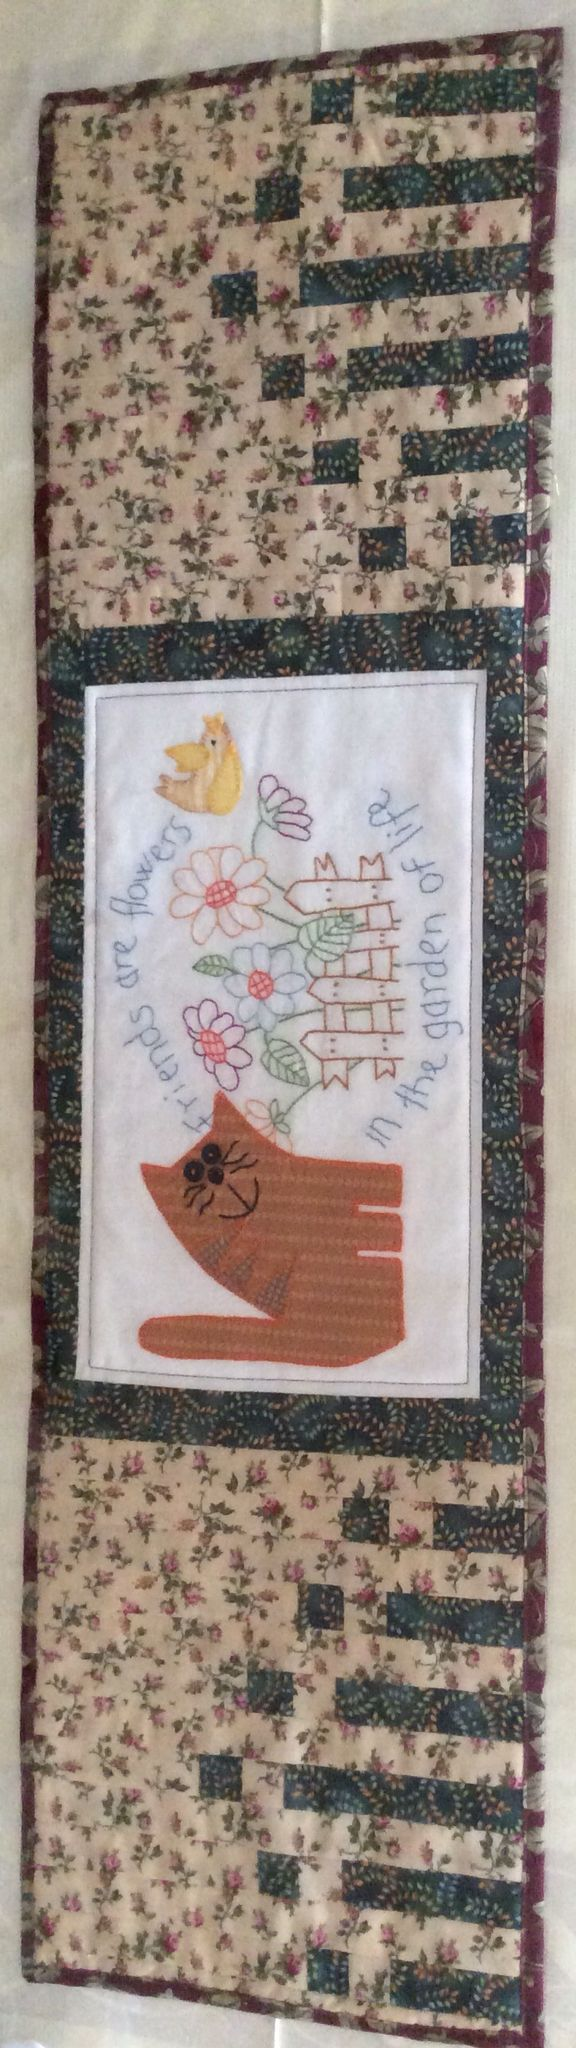 Cat embroidery quilt runner